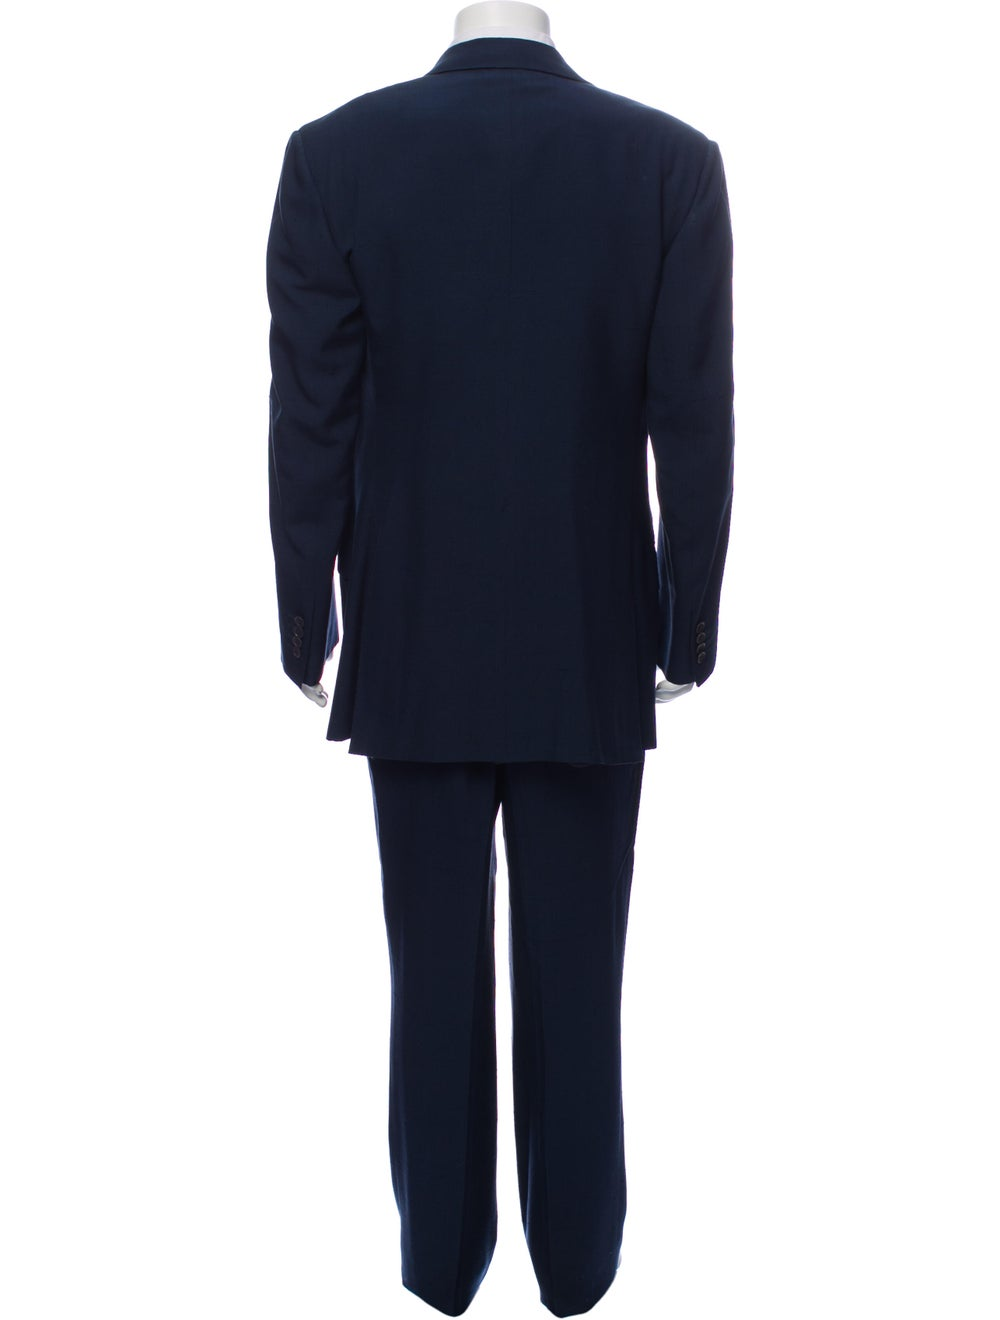 Silk Two-Piece Suit - image 3